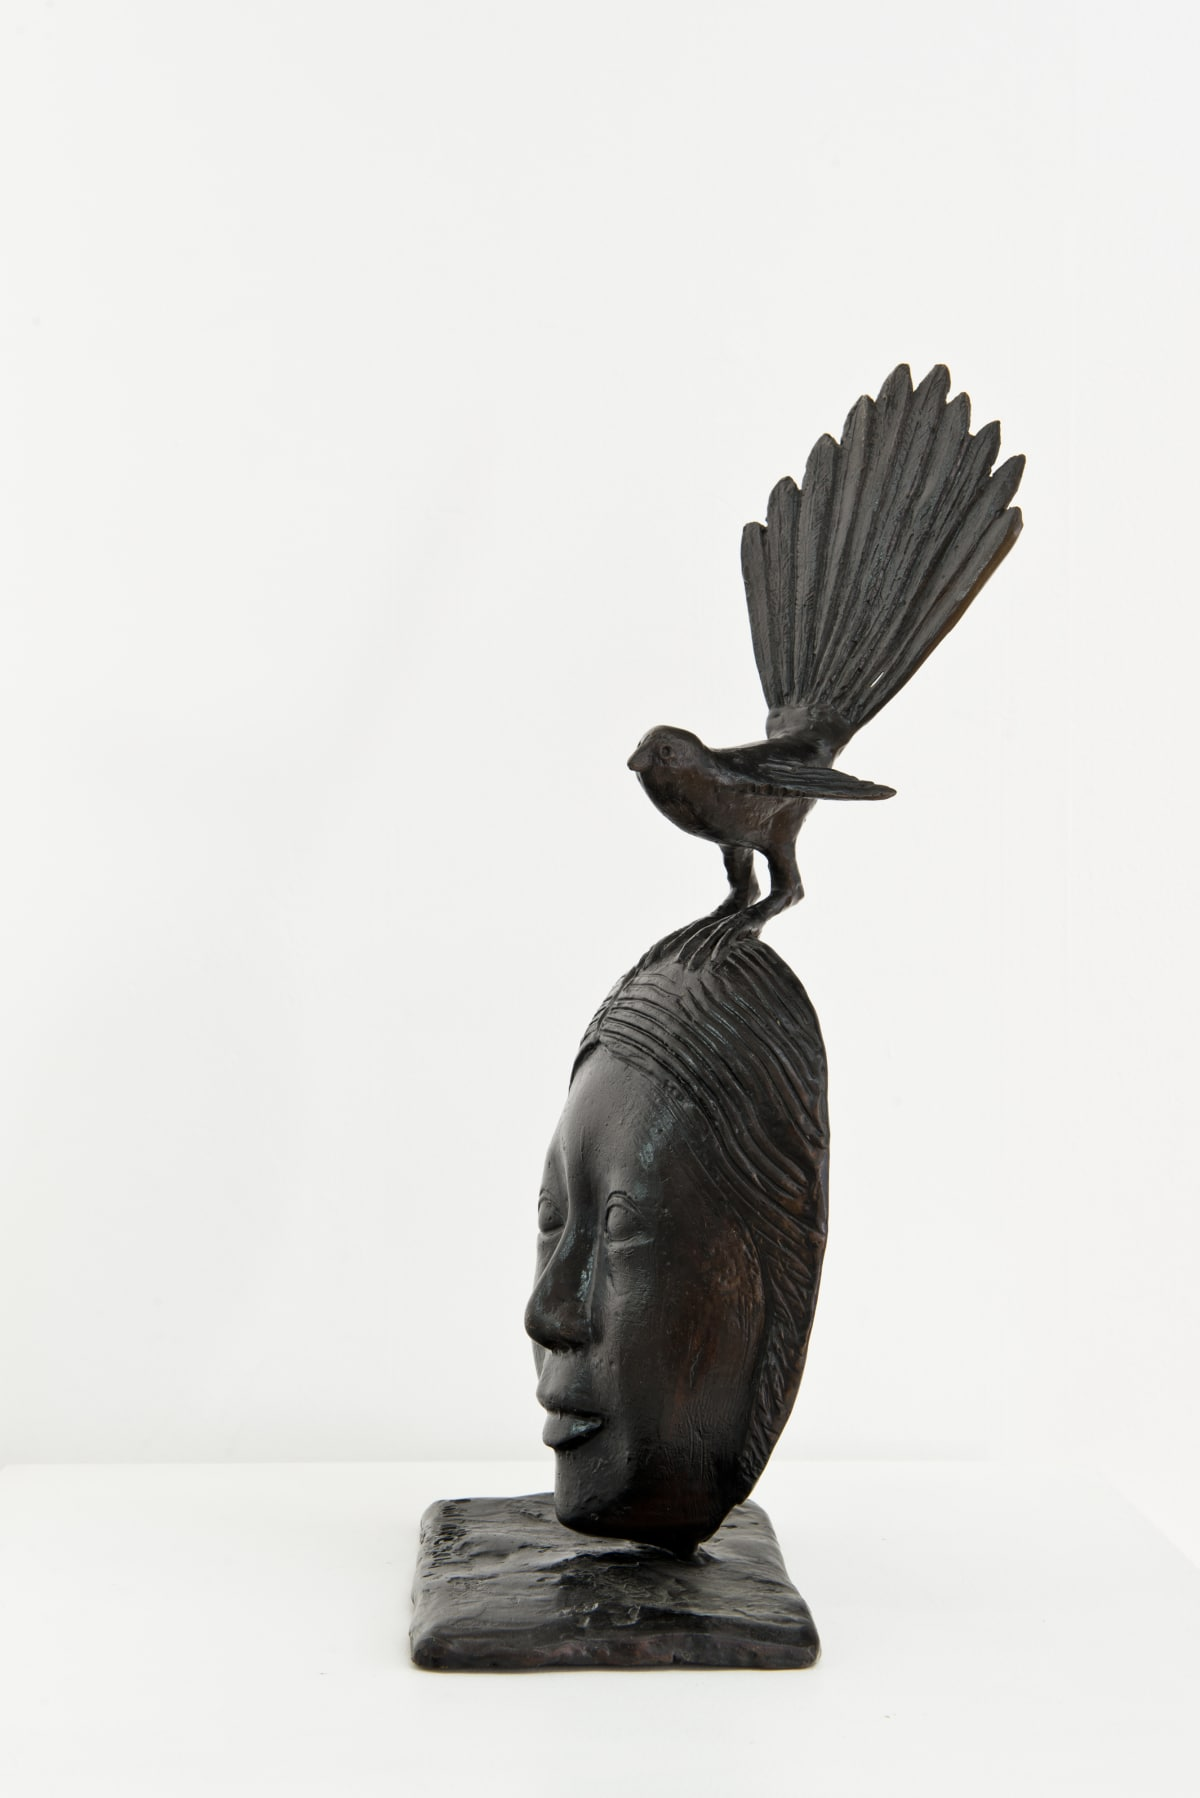 Paul DIBBLE Fantail on Polynesian Mask, 2014 Cast Patinated Bronze 16.9 x 7.9 x 5.5 in 43 x 20 x 14 cm